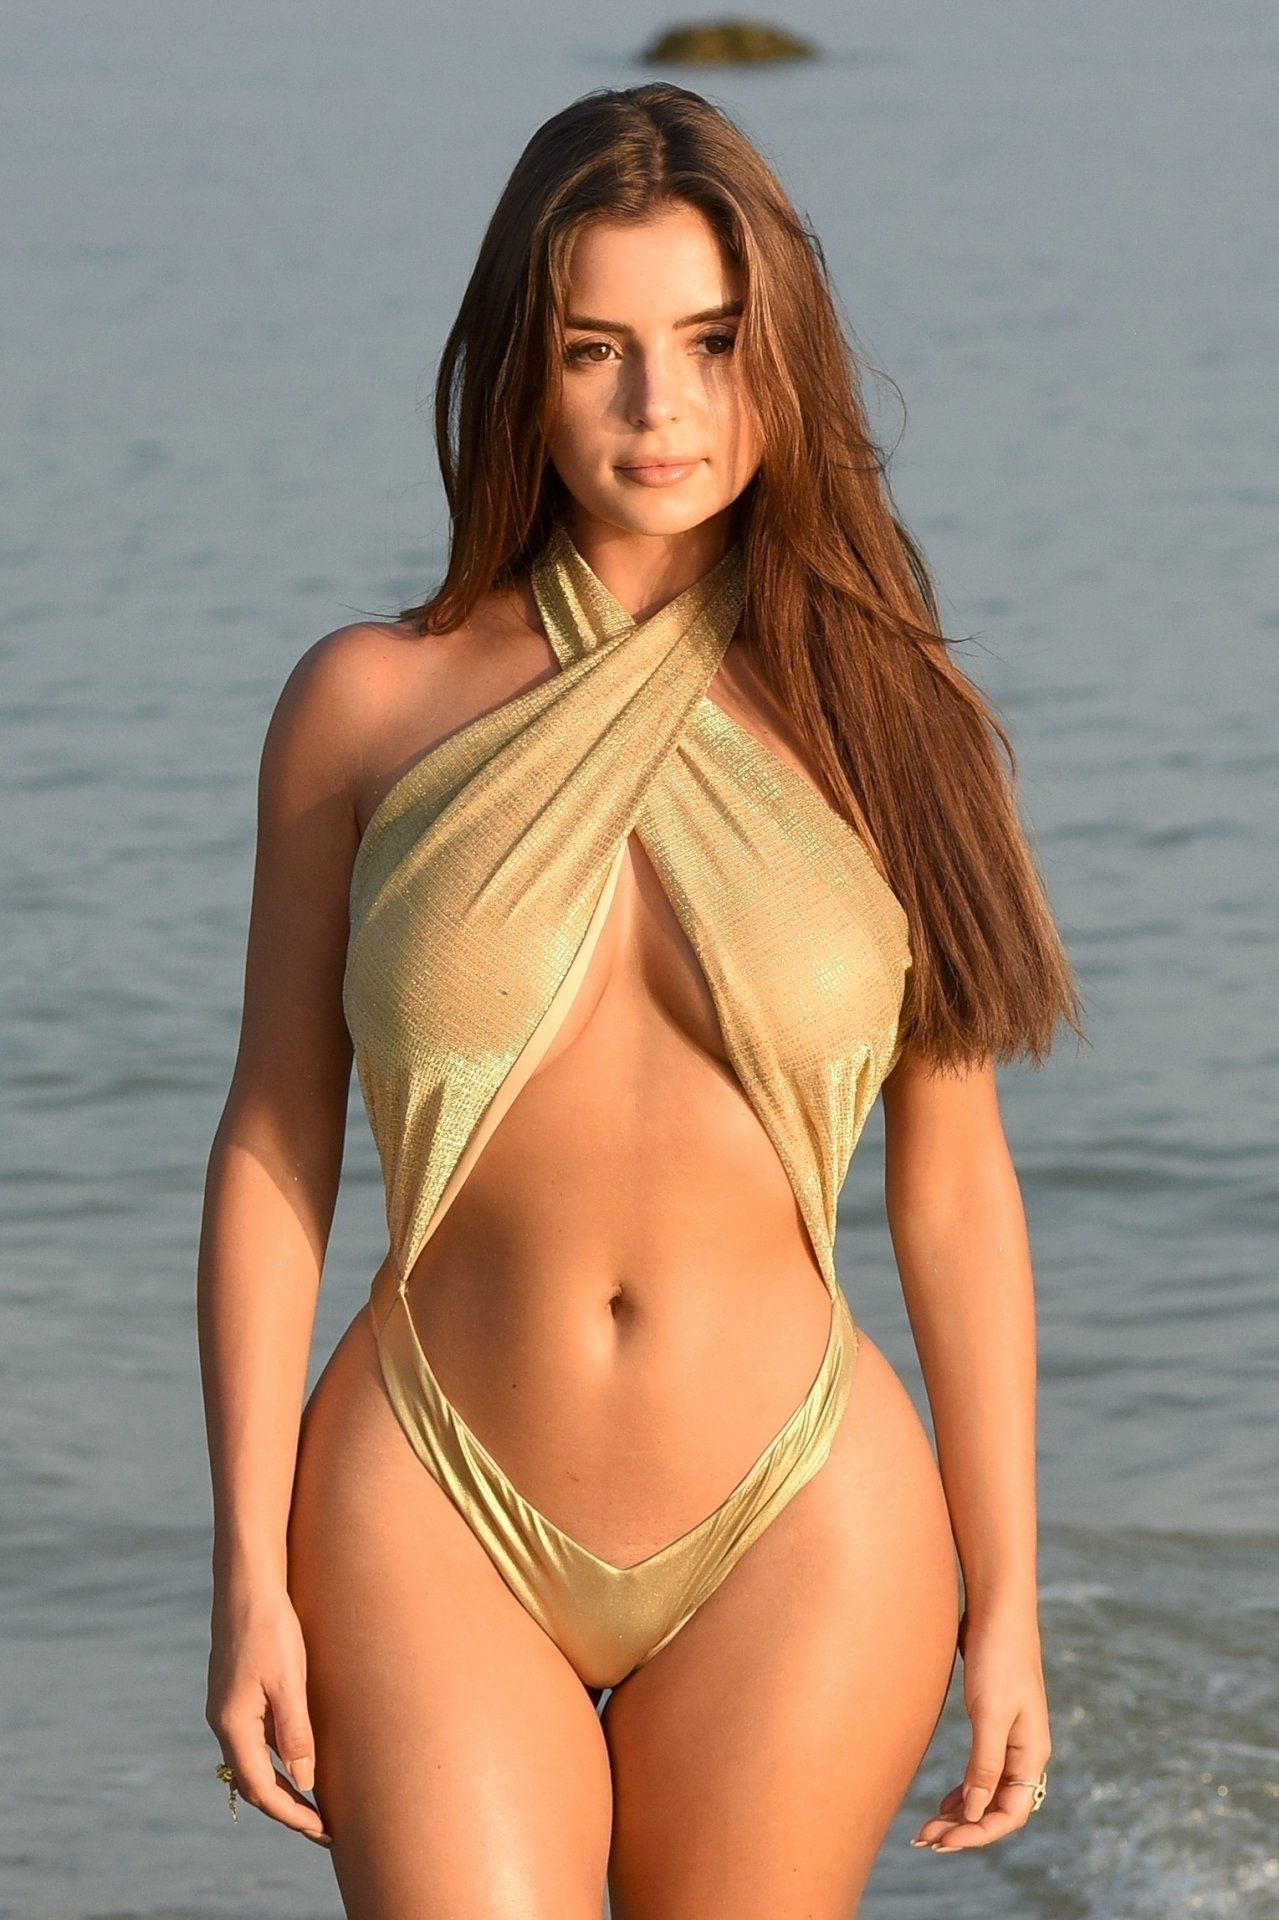 Demi Rose Mawby – Swimsuit candids in Thailand